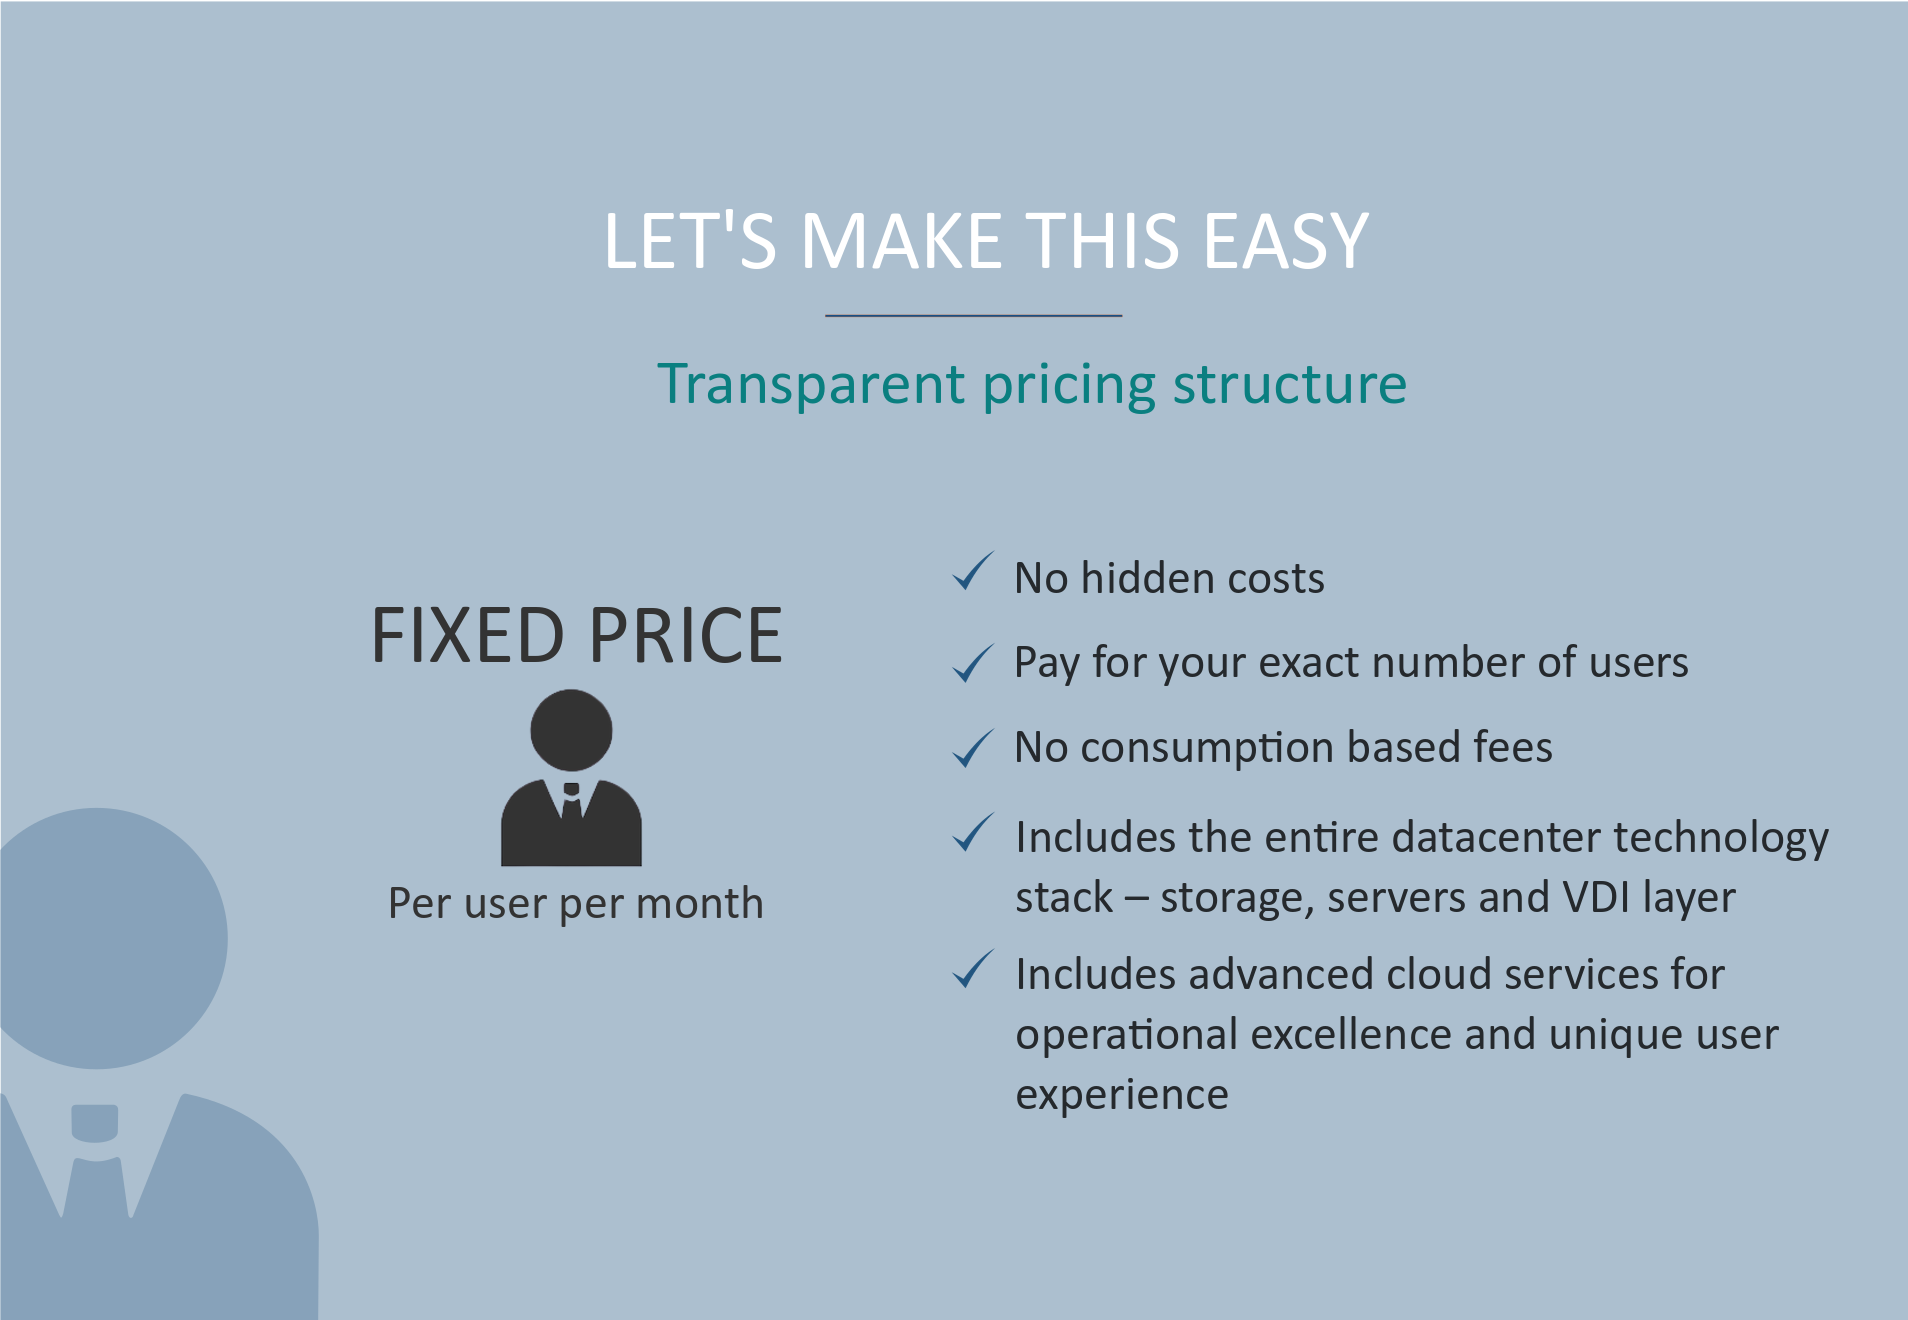 Lean-On pricing